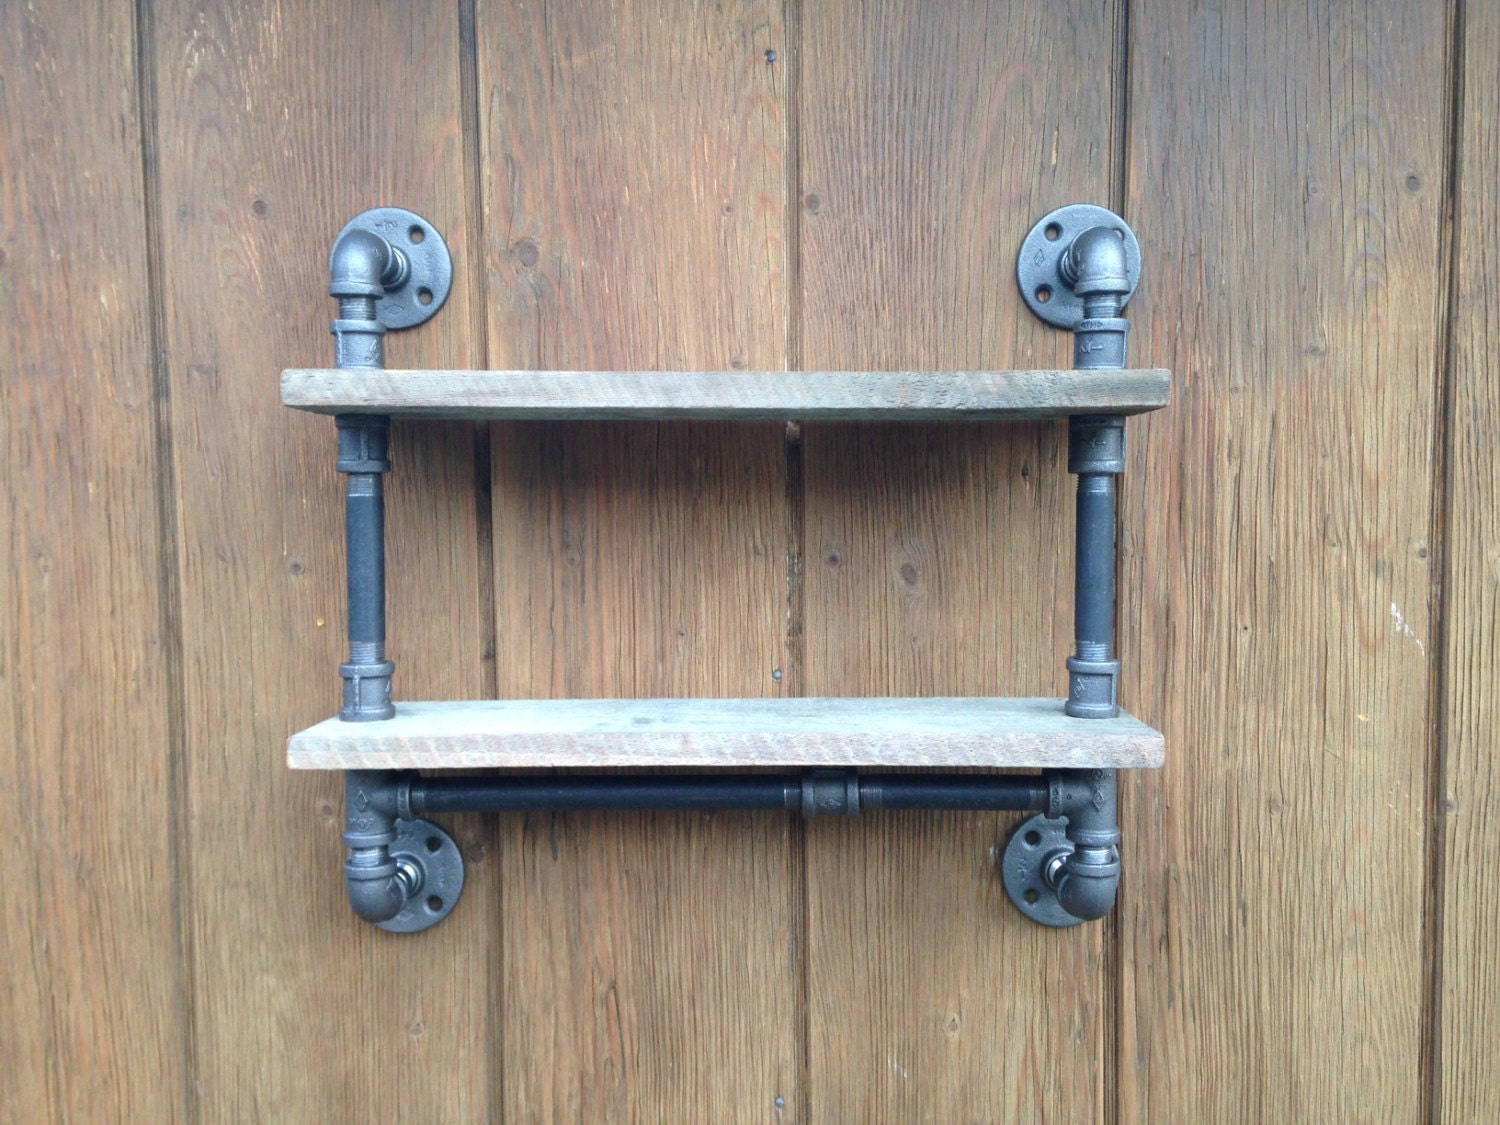 Amazing photo of Industrial Pipe Shelf Bathroom Shelf Reclaimed by PipesandPlanks with #396992 color and 1500x1125 pixels